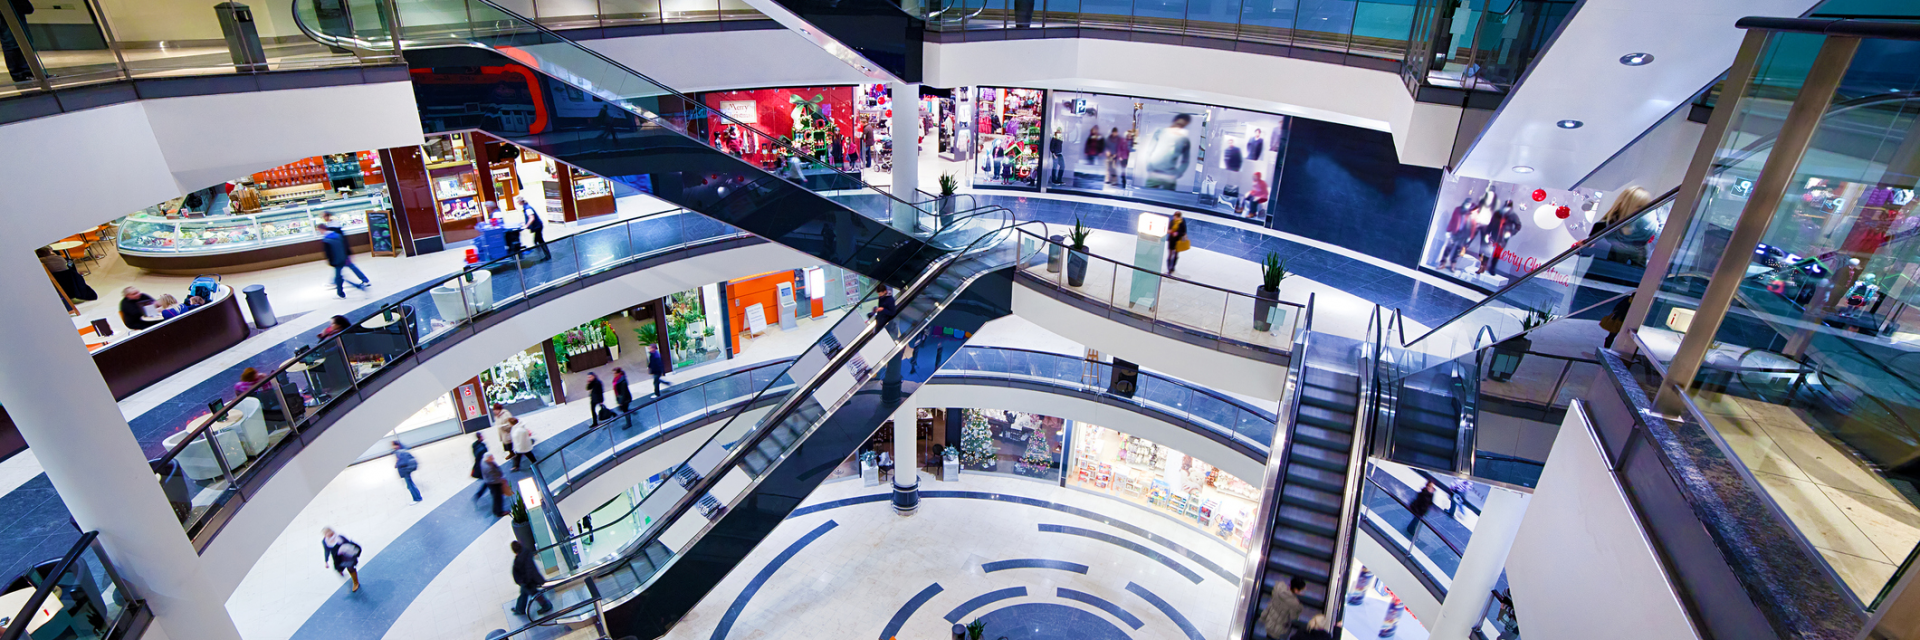 Modern, multi-level shopping mall interior. Busy sale time.